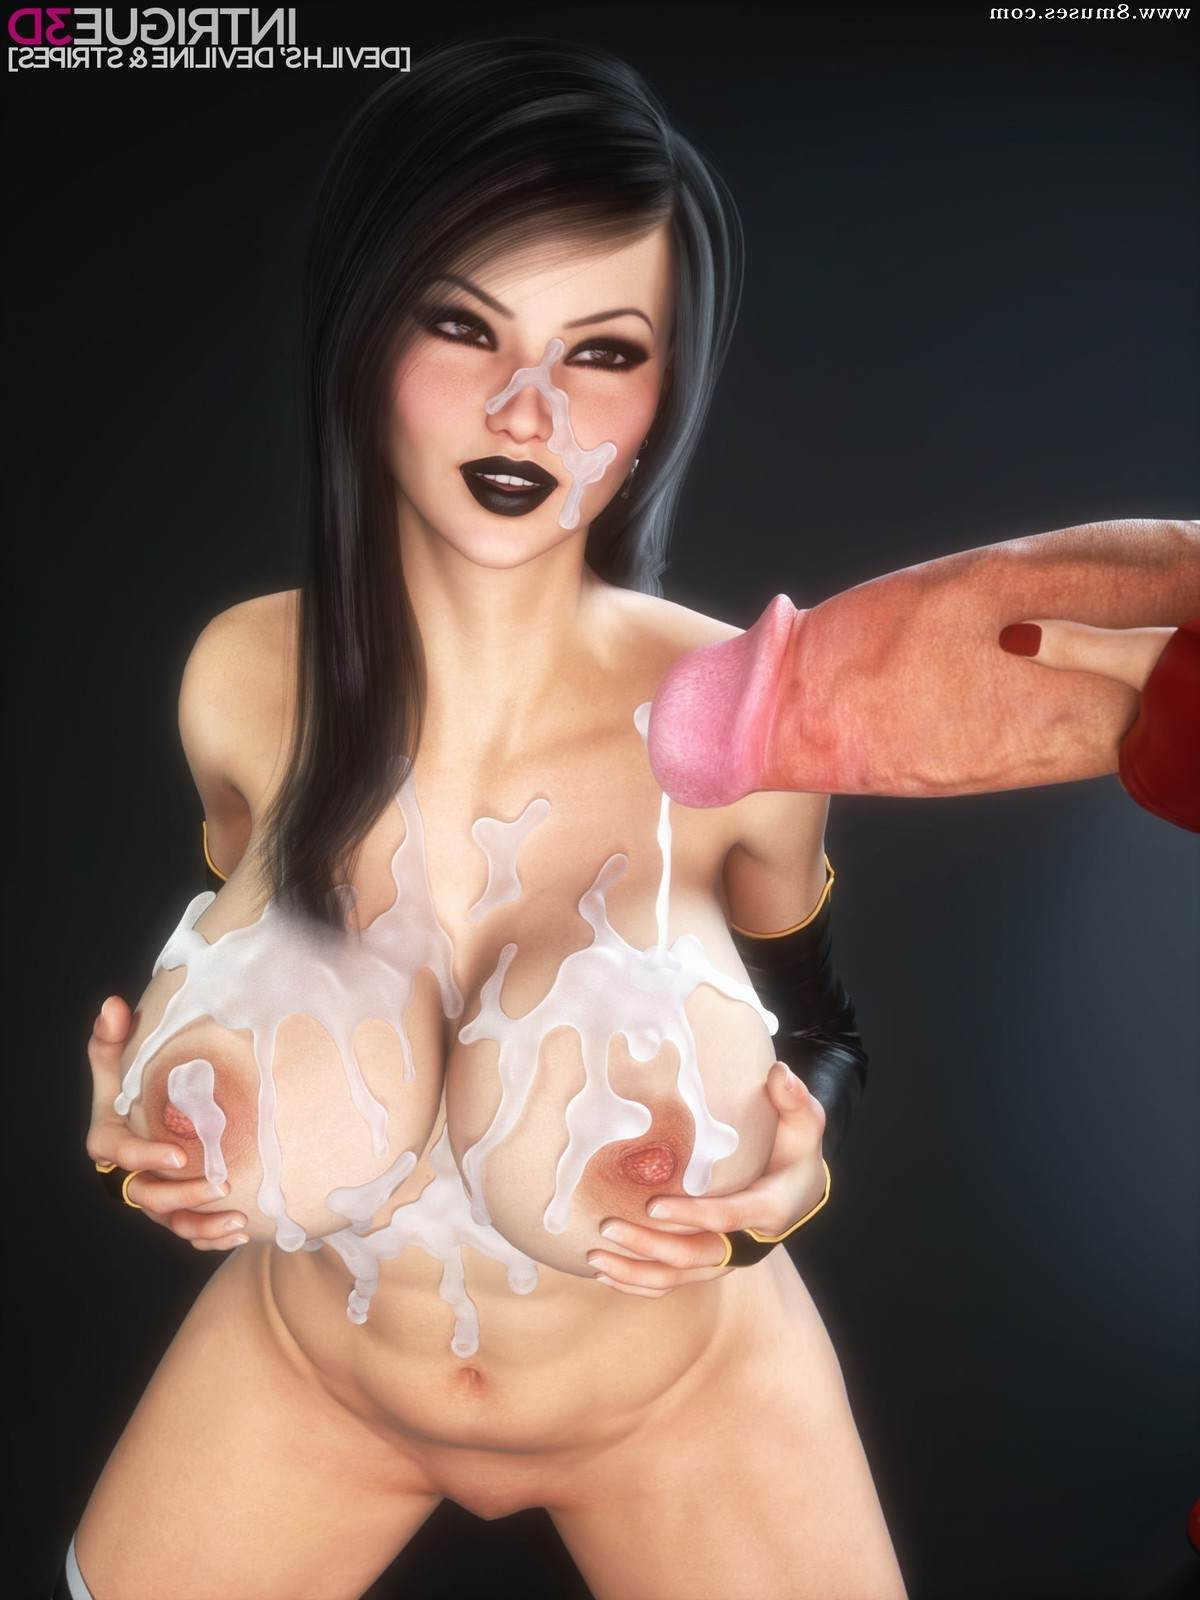 Intrigue3d_com-Comics/DevilineStripes/Part-2 Part_2__8muses_-_Sex_and_Porn_Comics_8.jpg